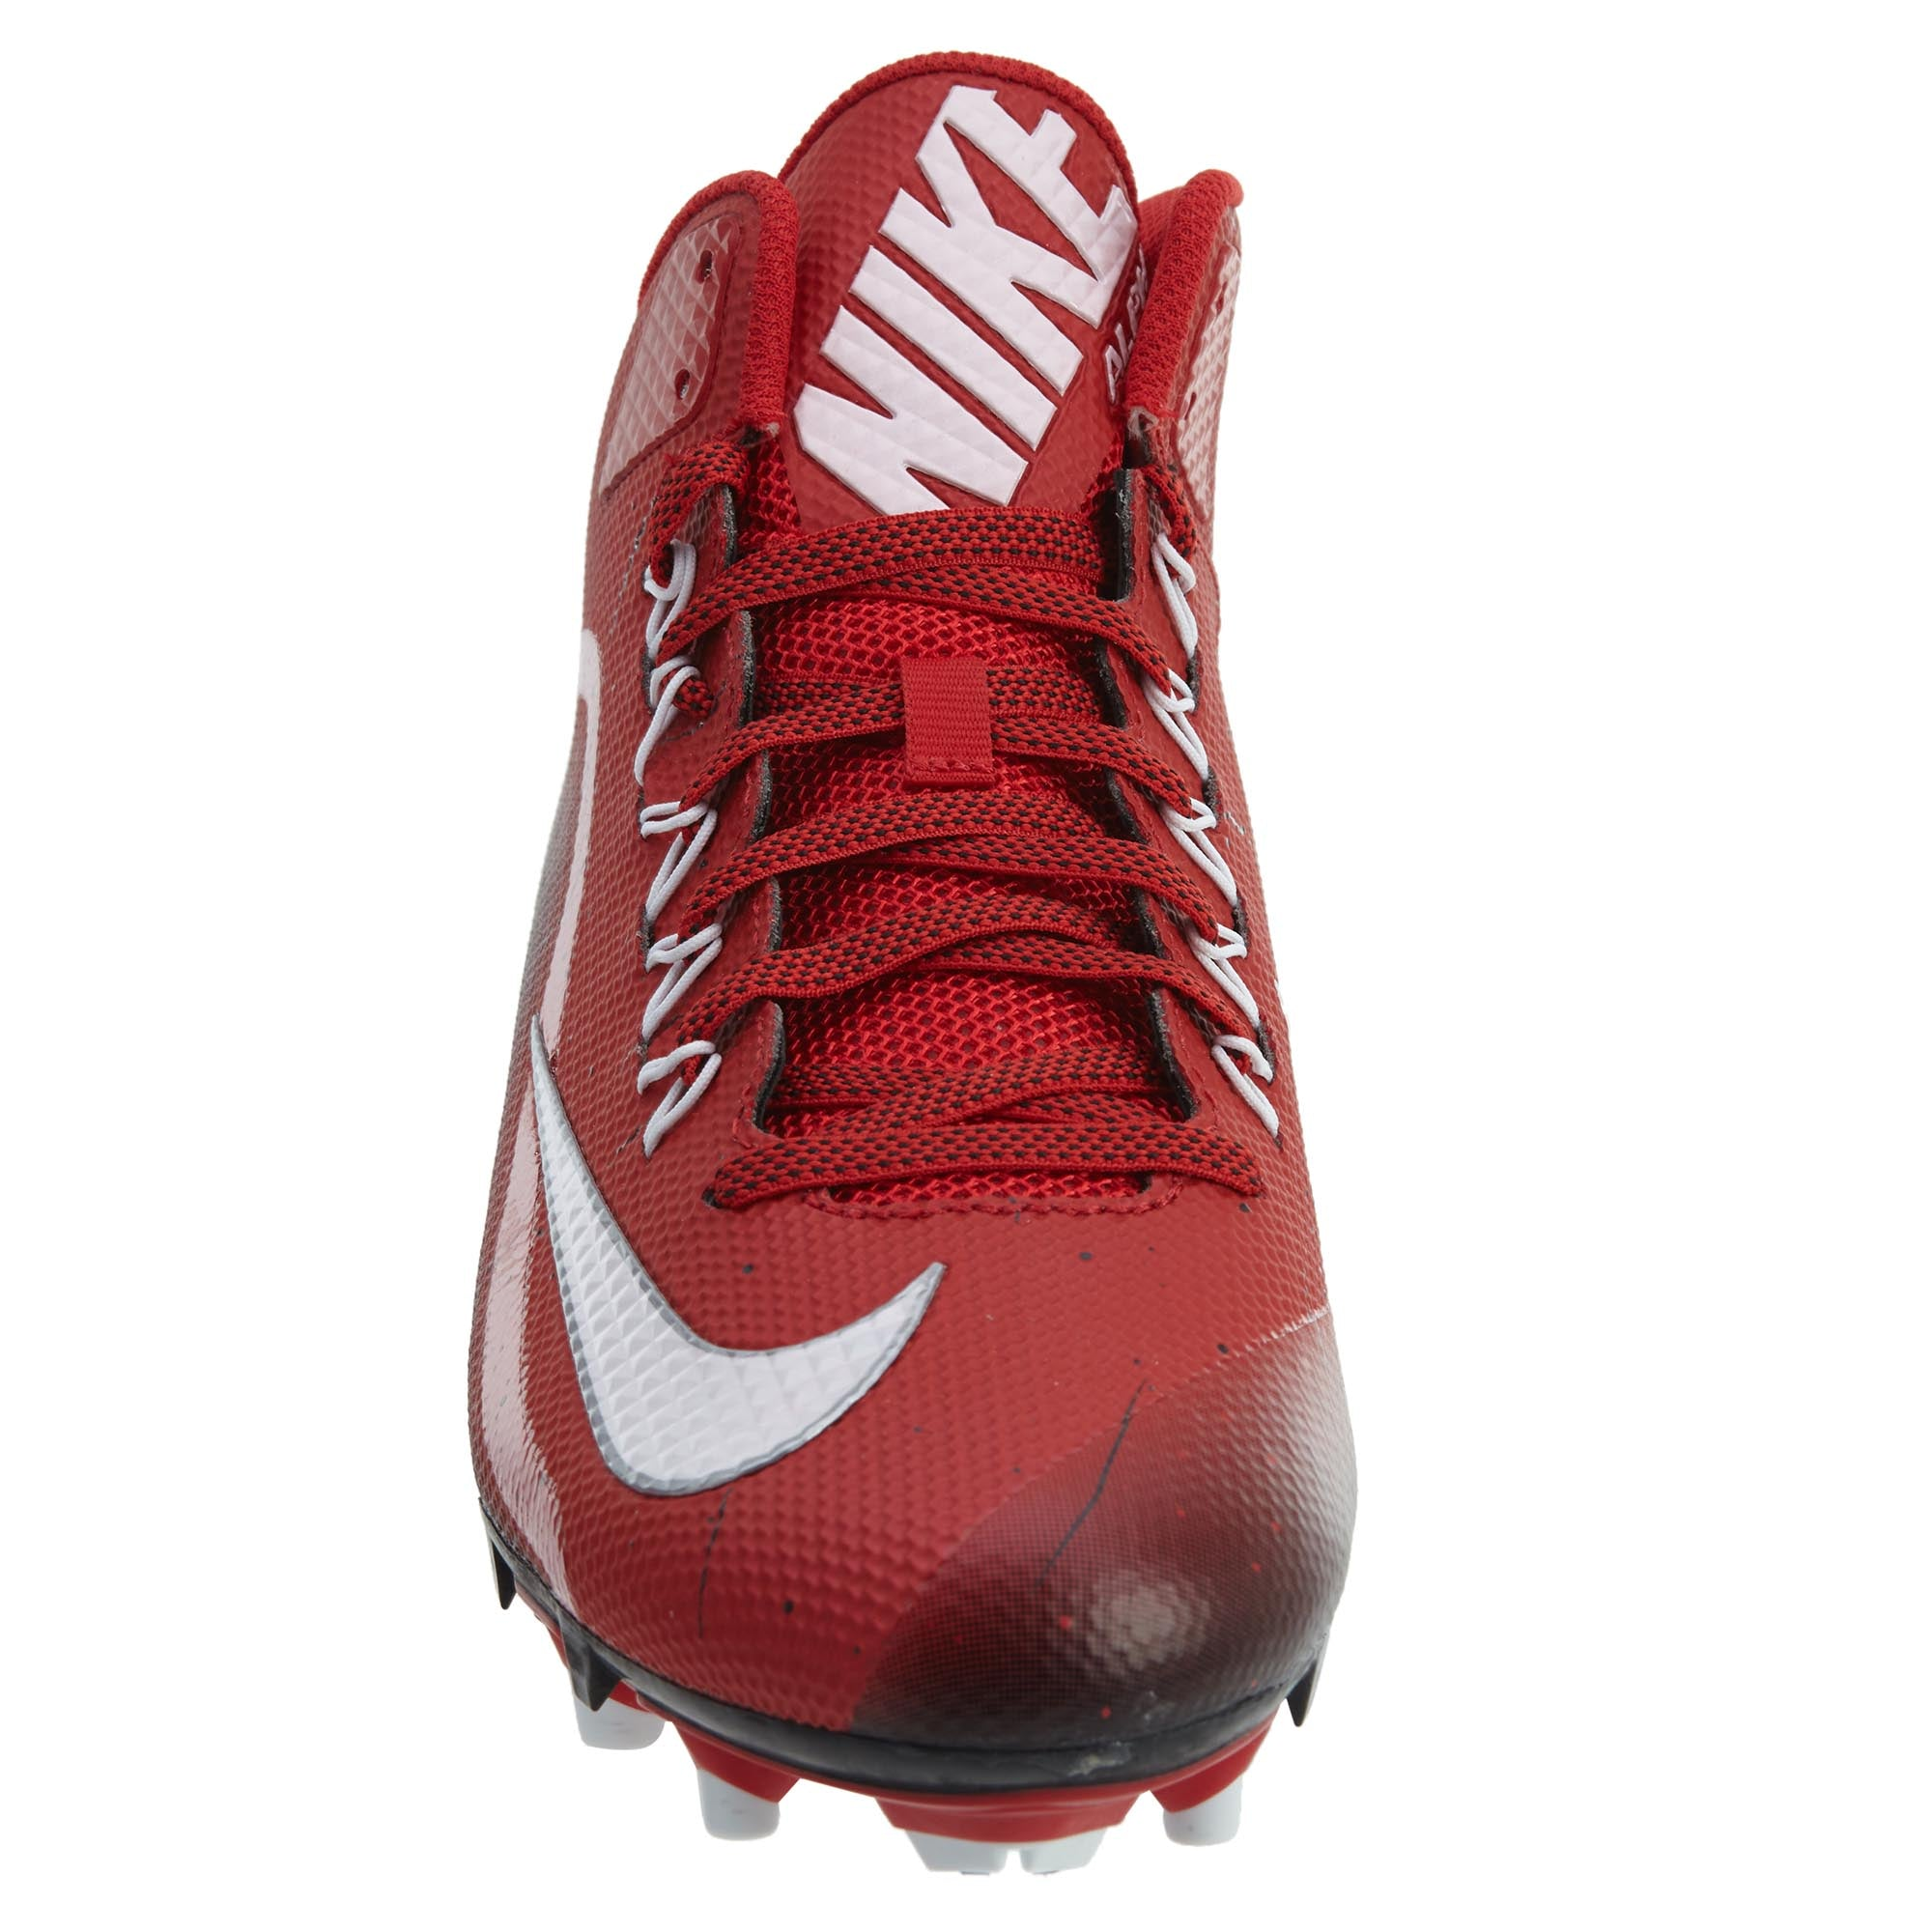 f2c416a24e02 NEW NIKE FOOTBALL cleats mens ALPHA PRO 2 Nike skin US sizes 719927-610 RED  WHIT Men